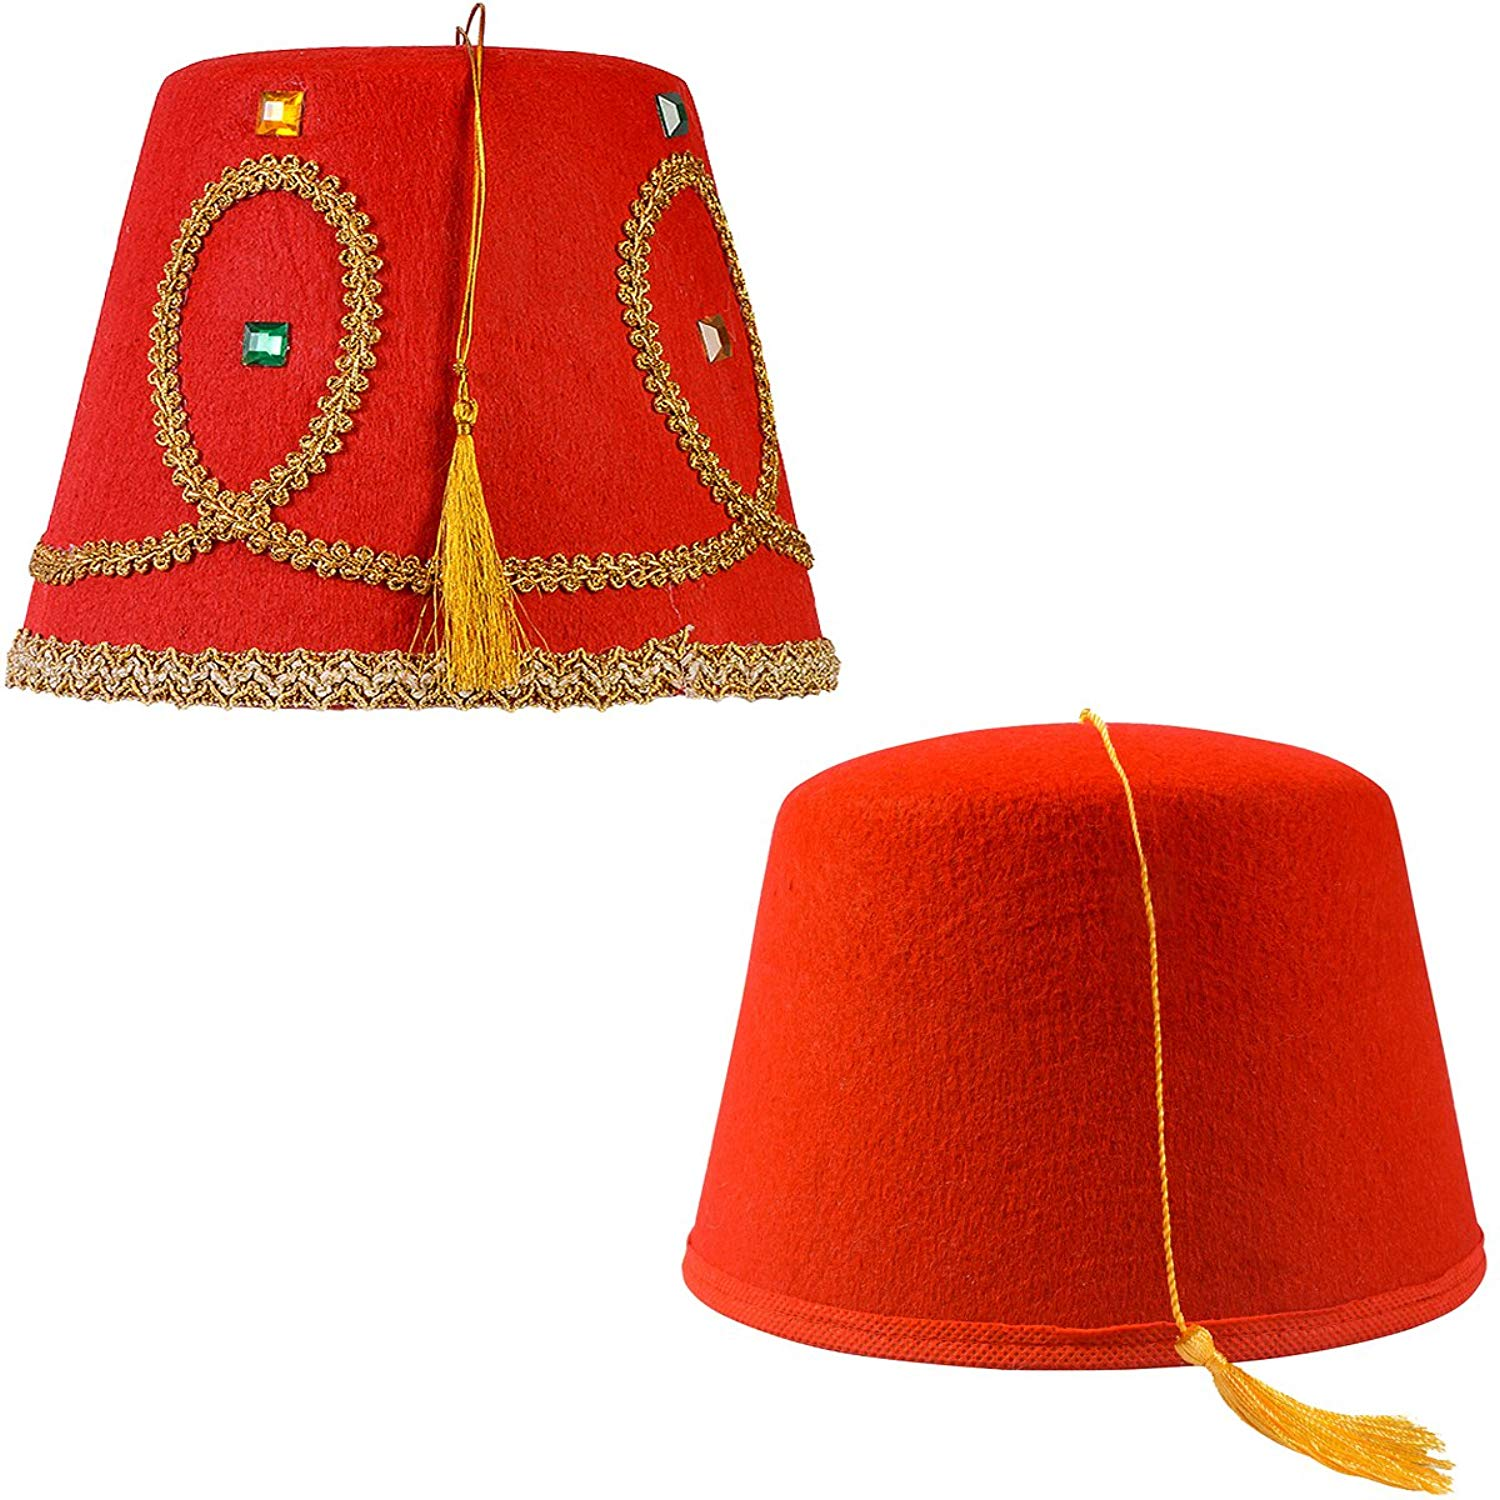 f29d4d5b7b1 Tigerdoe Fez Hat – 2 Pack - Red Fez Hat with Gold Tassel - Turkish Hat